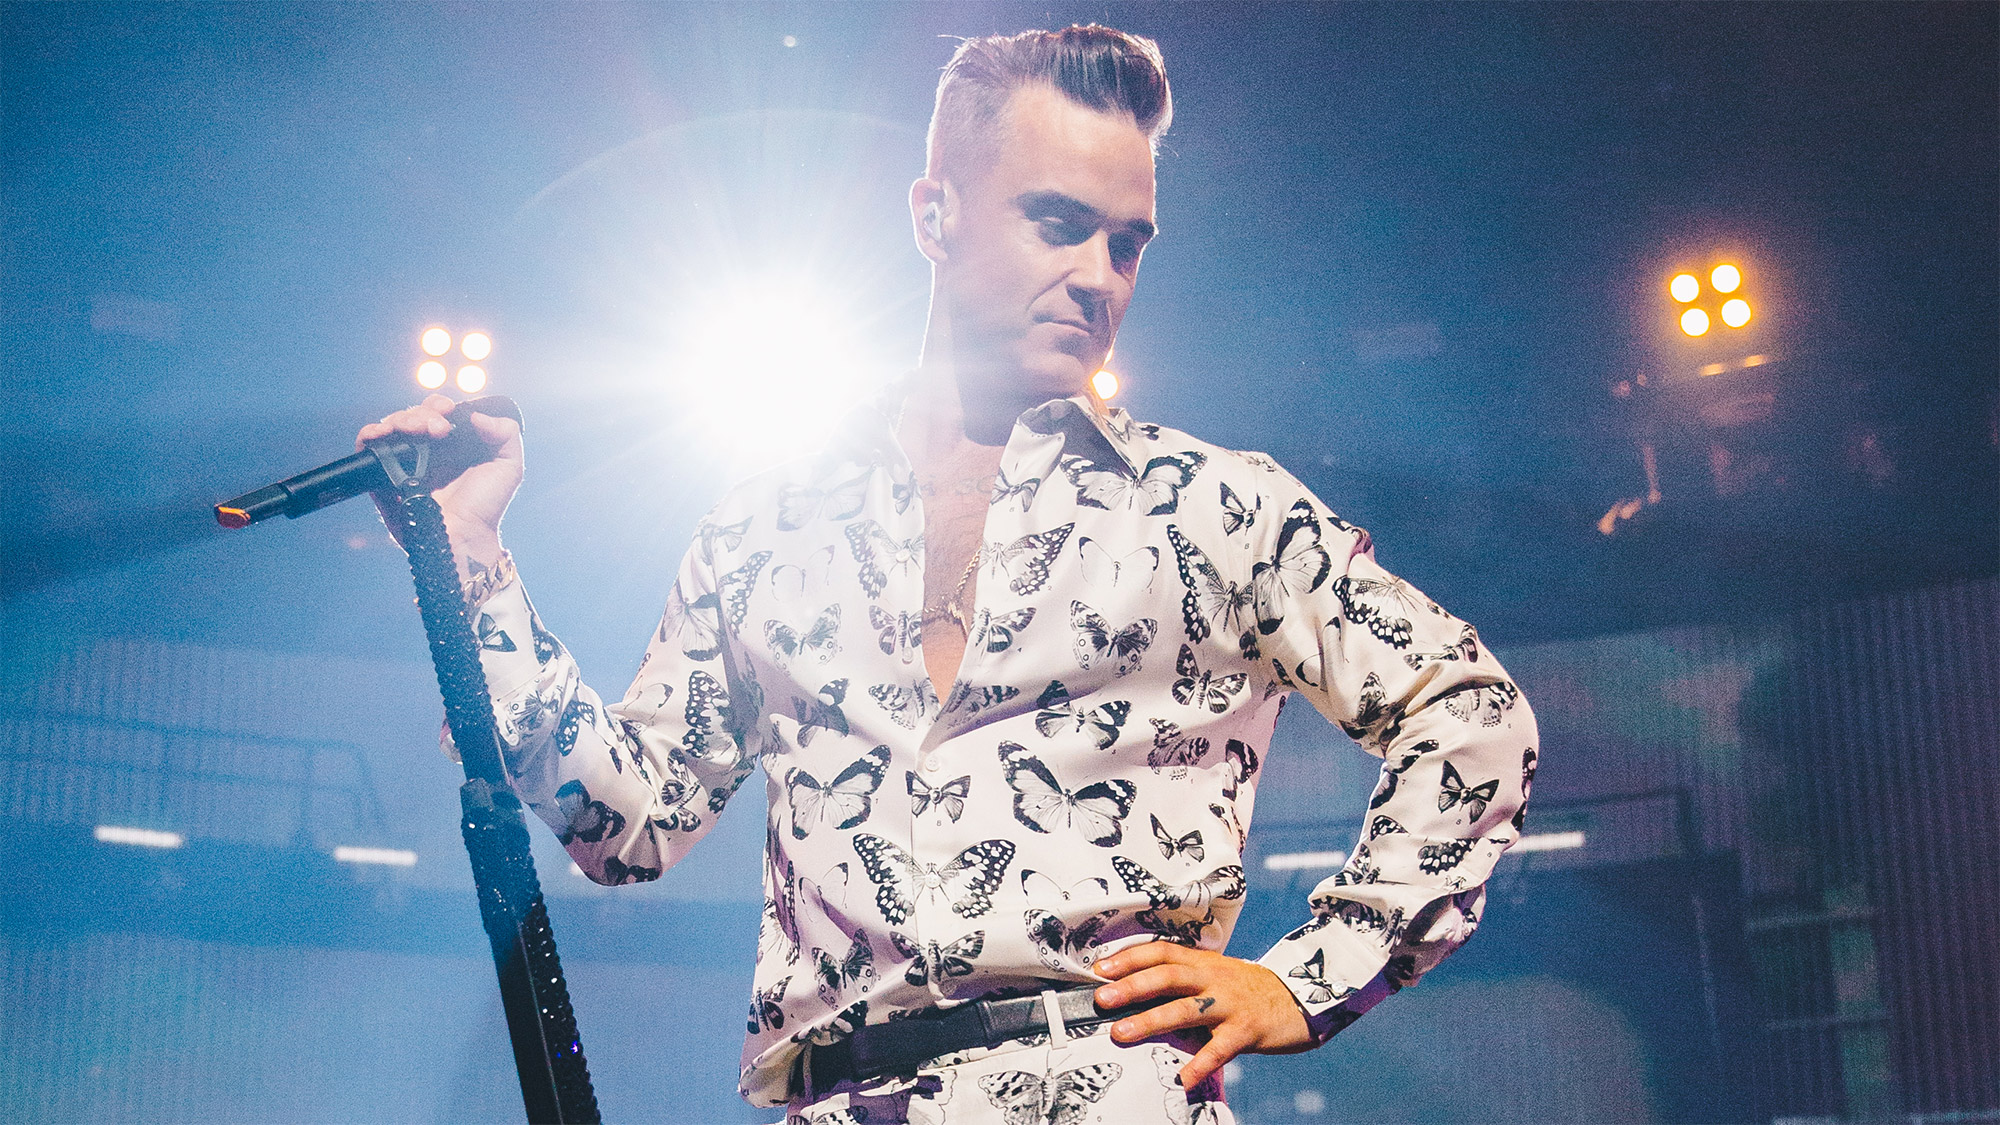 https://blog.ticketcorner.ch/wp-content/uploads/2016/09/robbie-williams-2016-01-1.jpg